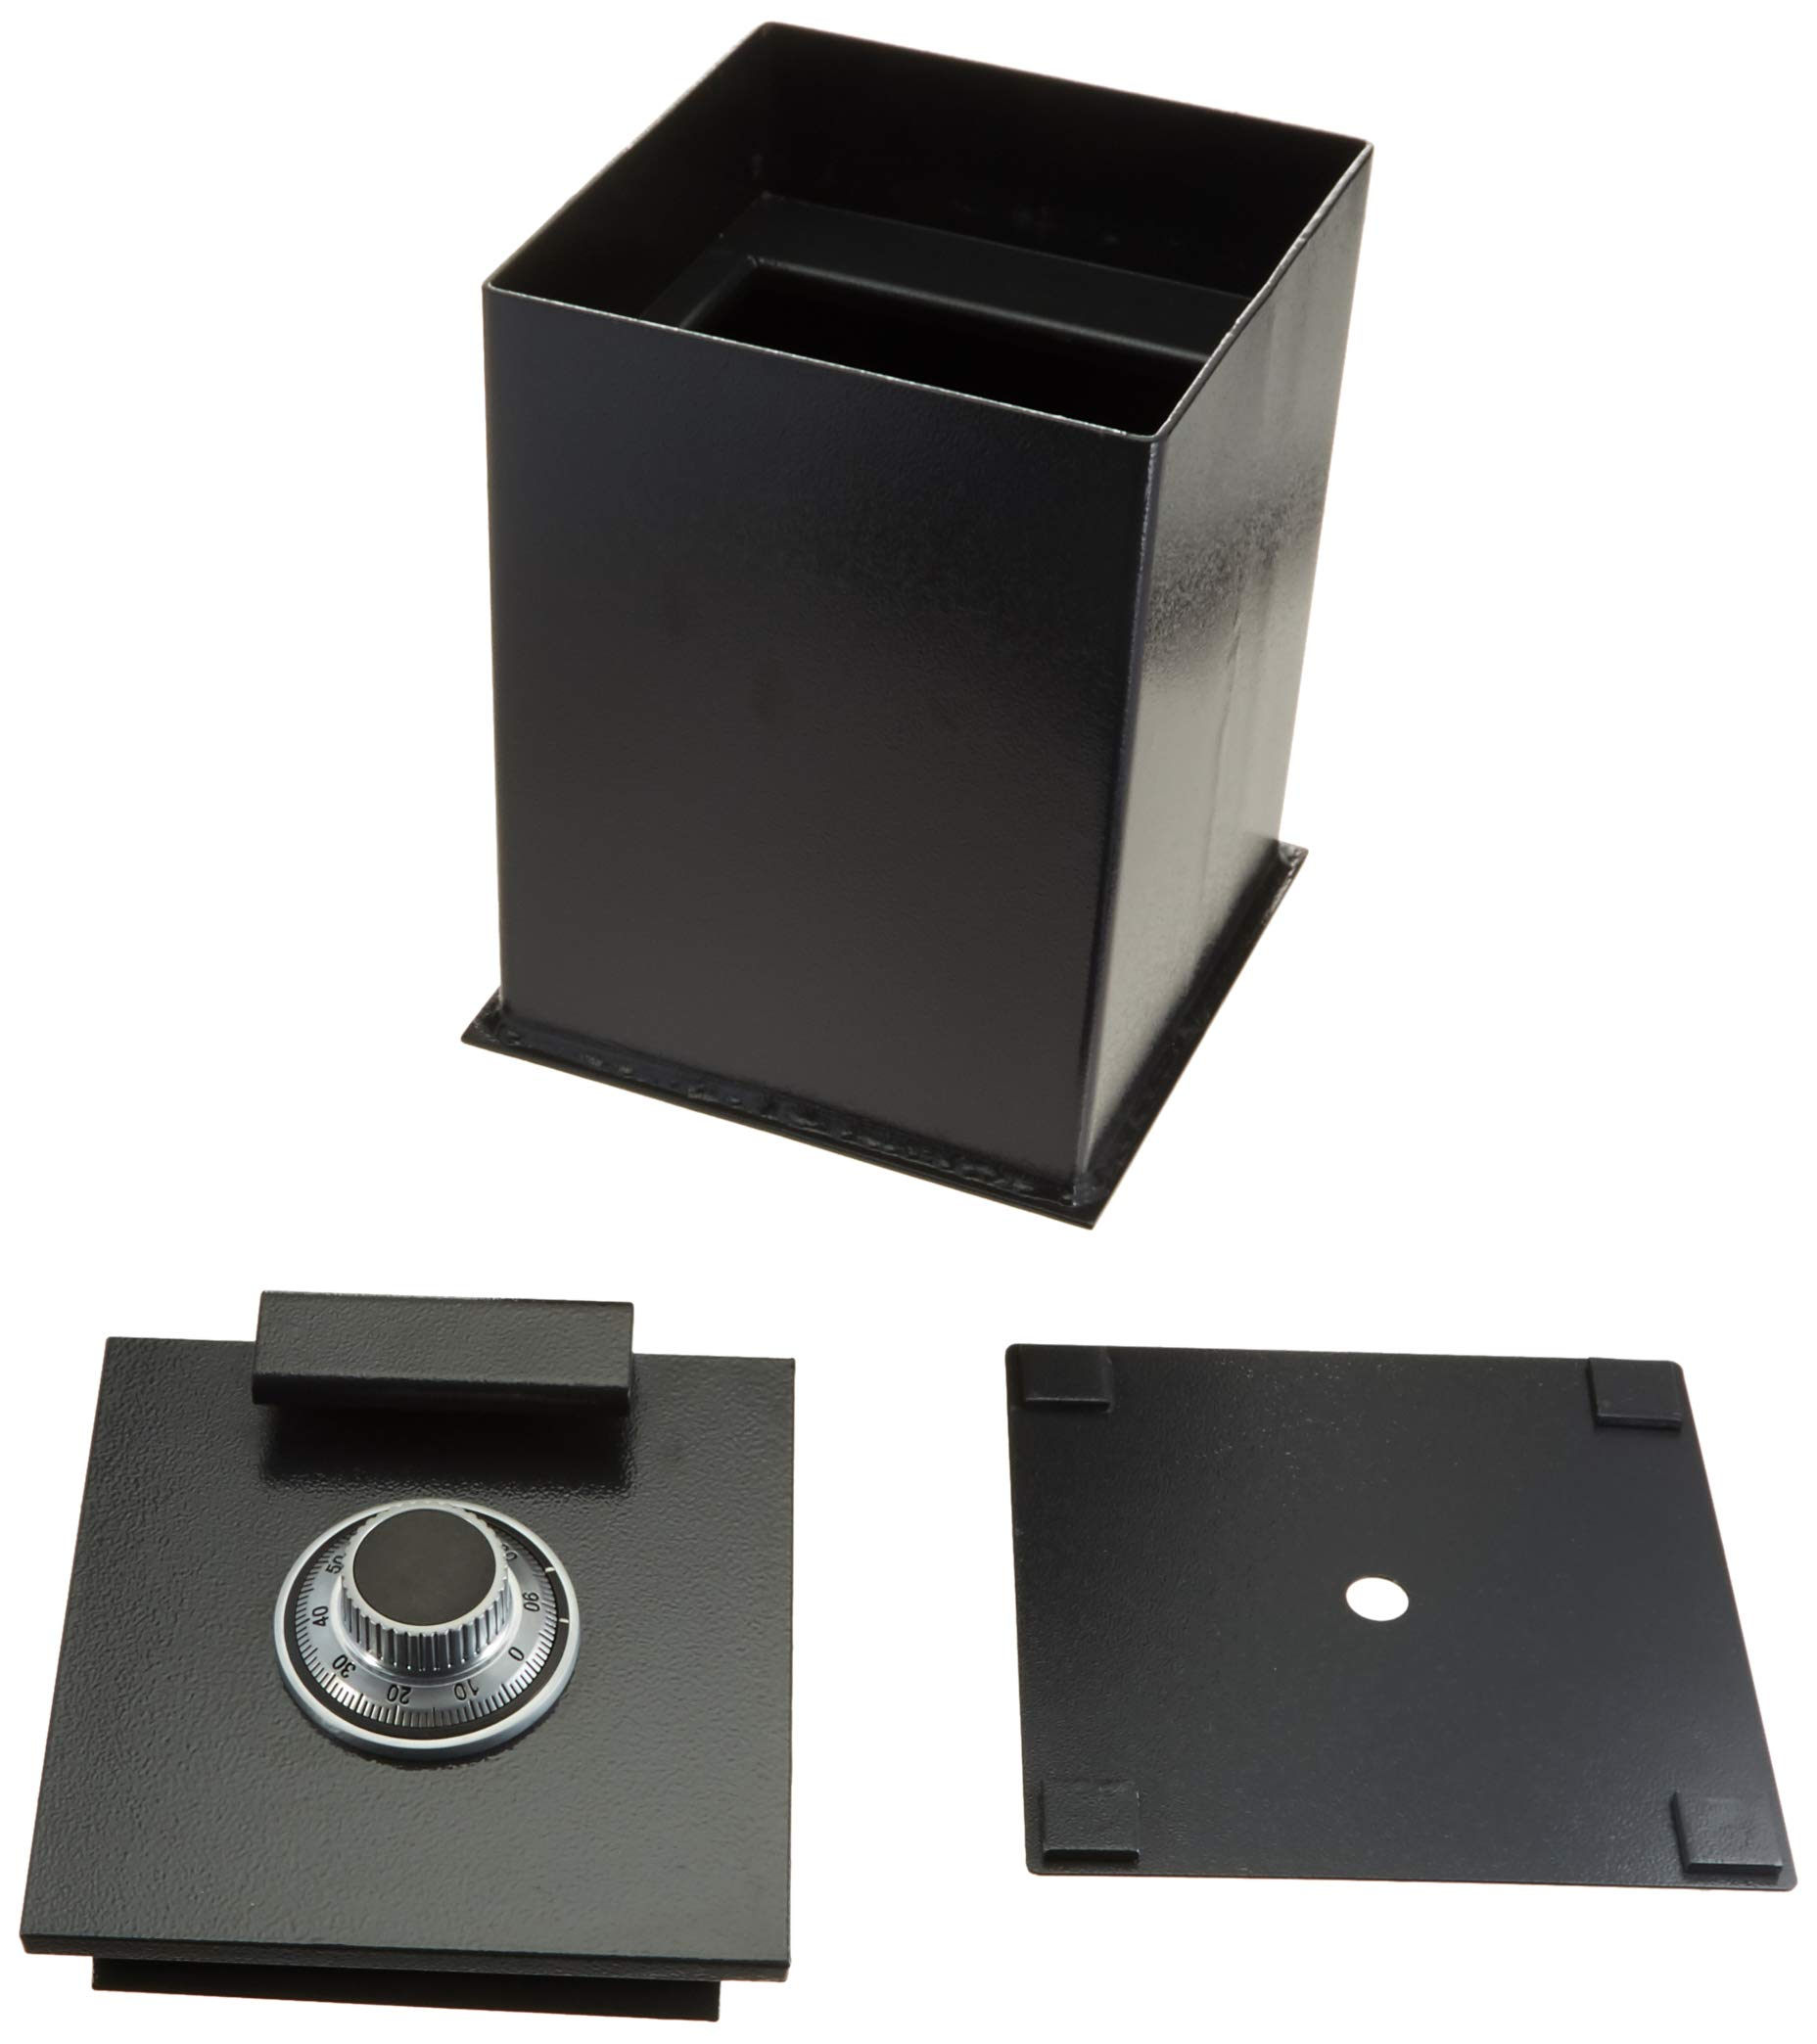 Protex Durable Floor Safe, Black (IF-1212C II) by Protex (Image #1)